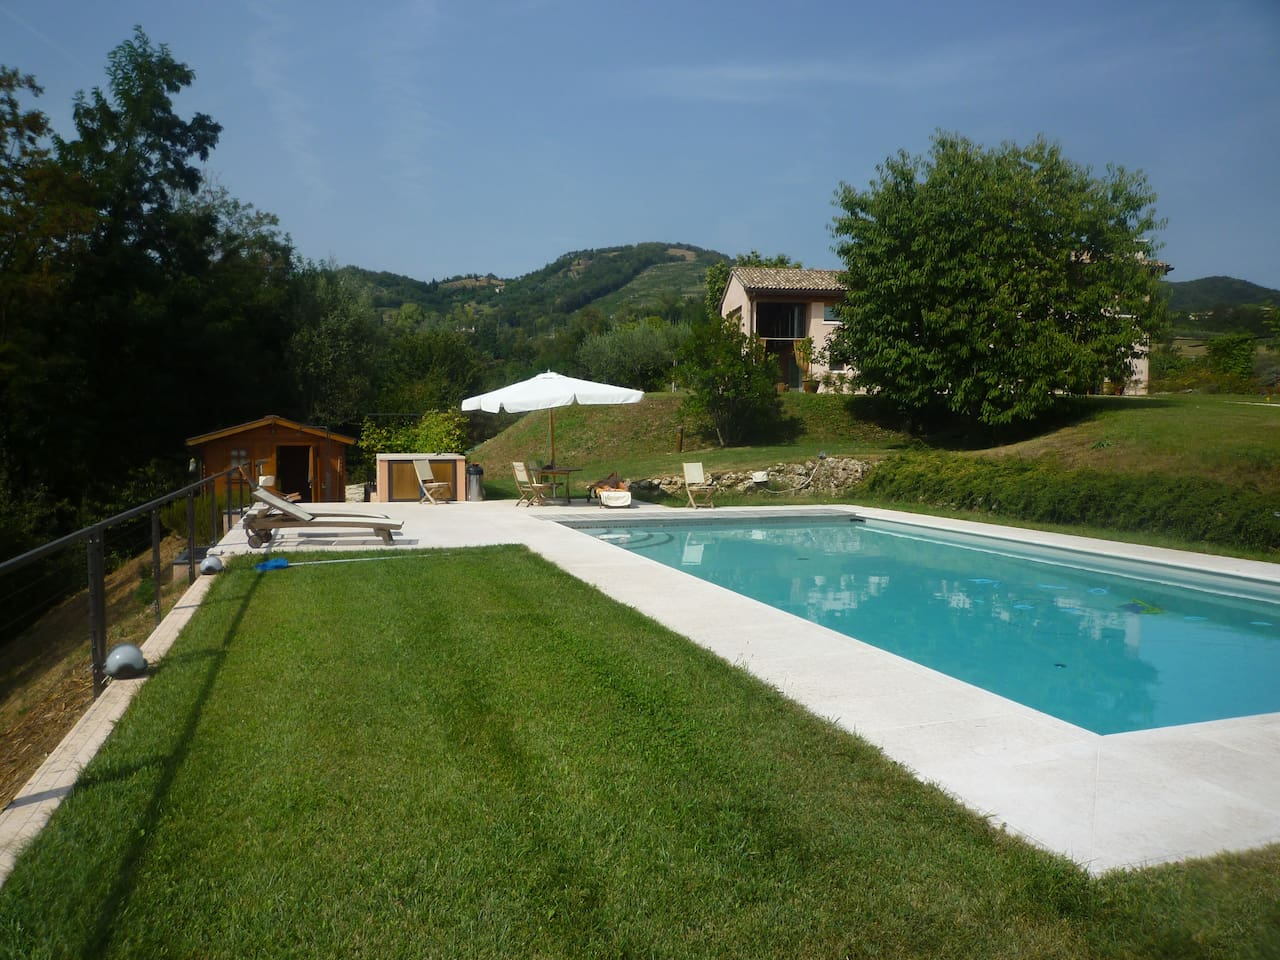 Swimming pool and house view from South